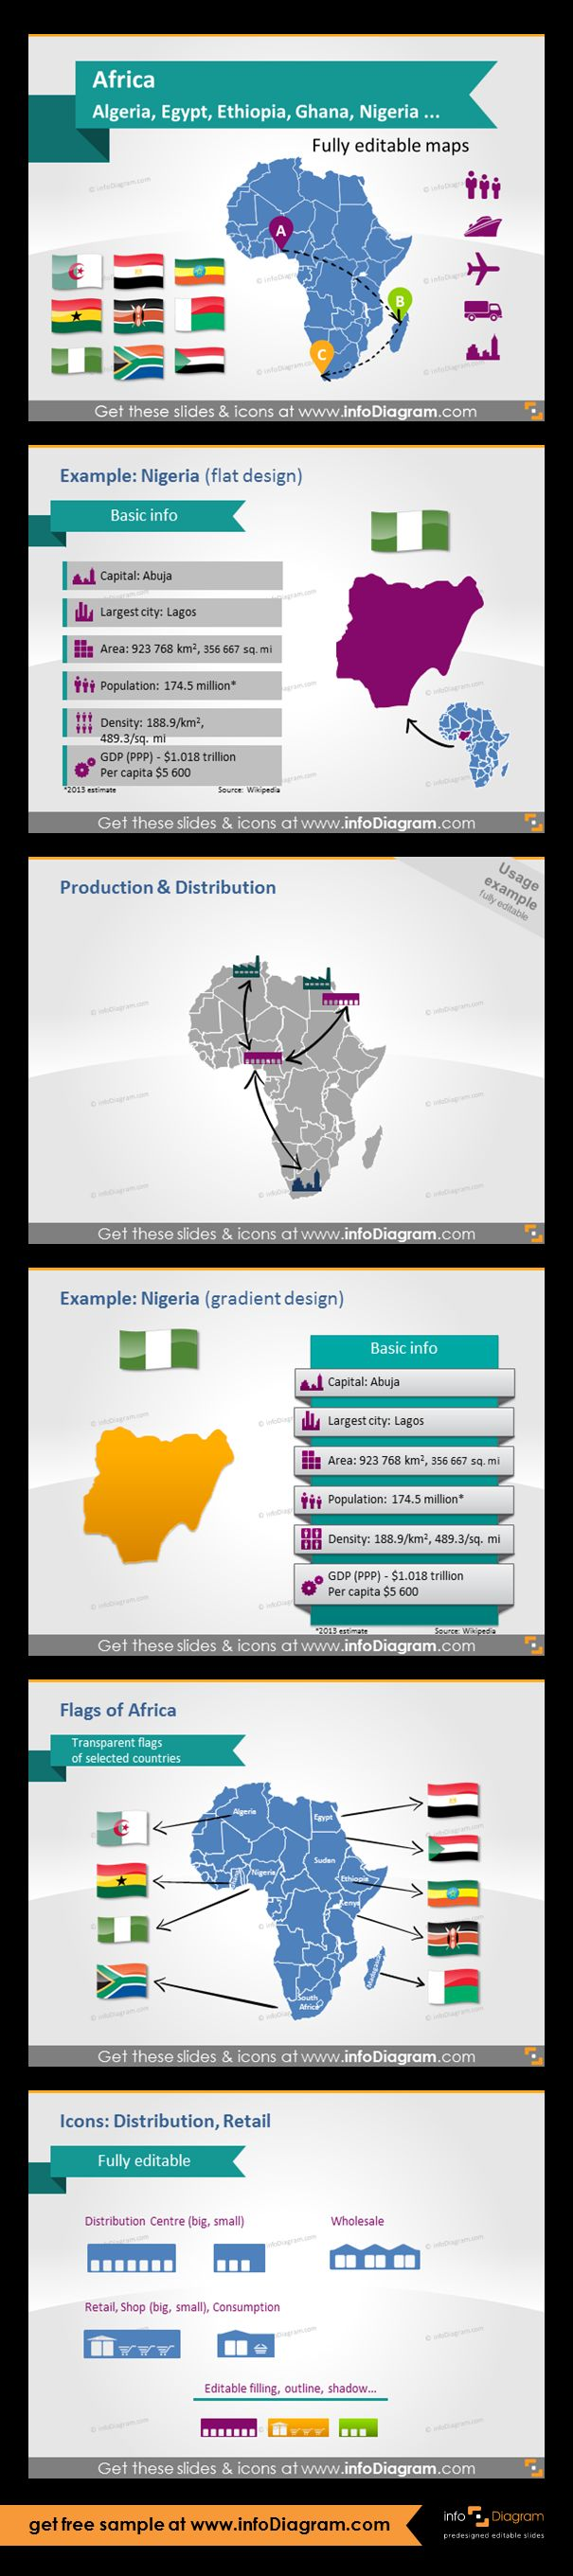 Africa countries - editable PowerPoint maps, localization and transport icons, country statistics. Fully editable maps, icons, arrows. Country statistics data: Population, Density, Area, GDP, Largest city, Capital. Example of presenting production and distribution on a map. Infographics - flags of African countries. Distribution and retail pictograms: distribution centre icon, wholesale icon, consumption retail shop icon.